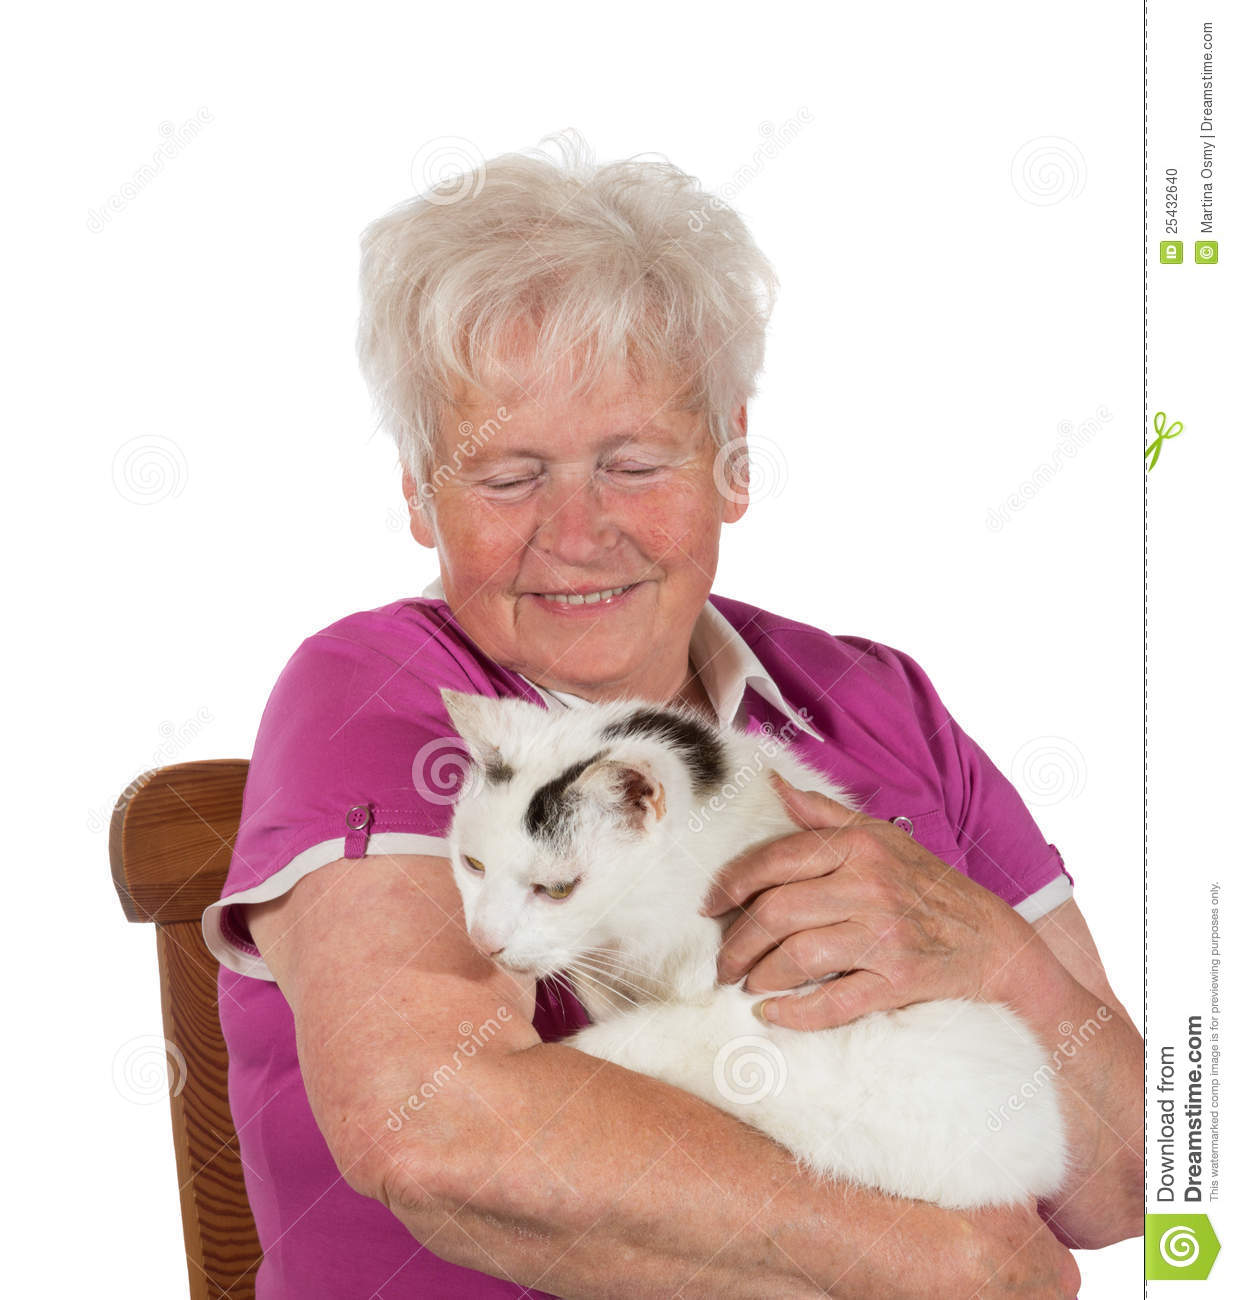 sound and cheerful elderly lady 10 daily habits of happy single women, because independence is a beautiful  thing bynatalia  as hokey as those sound, they work (try it.